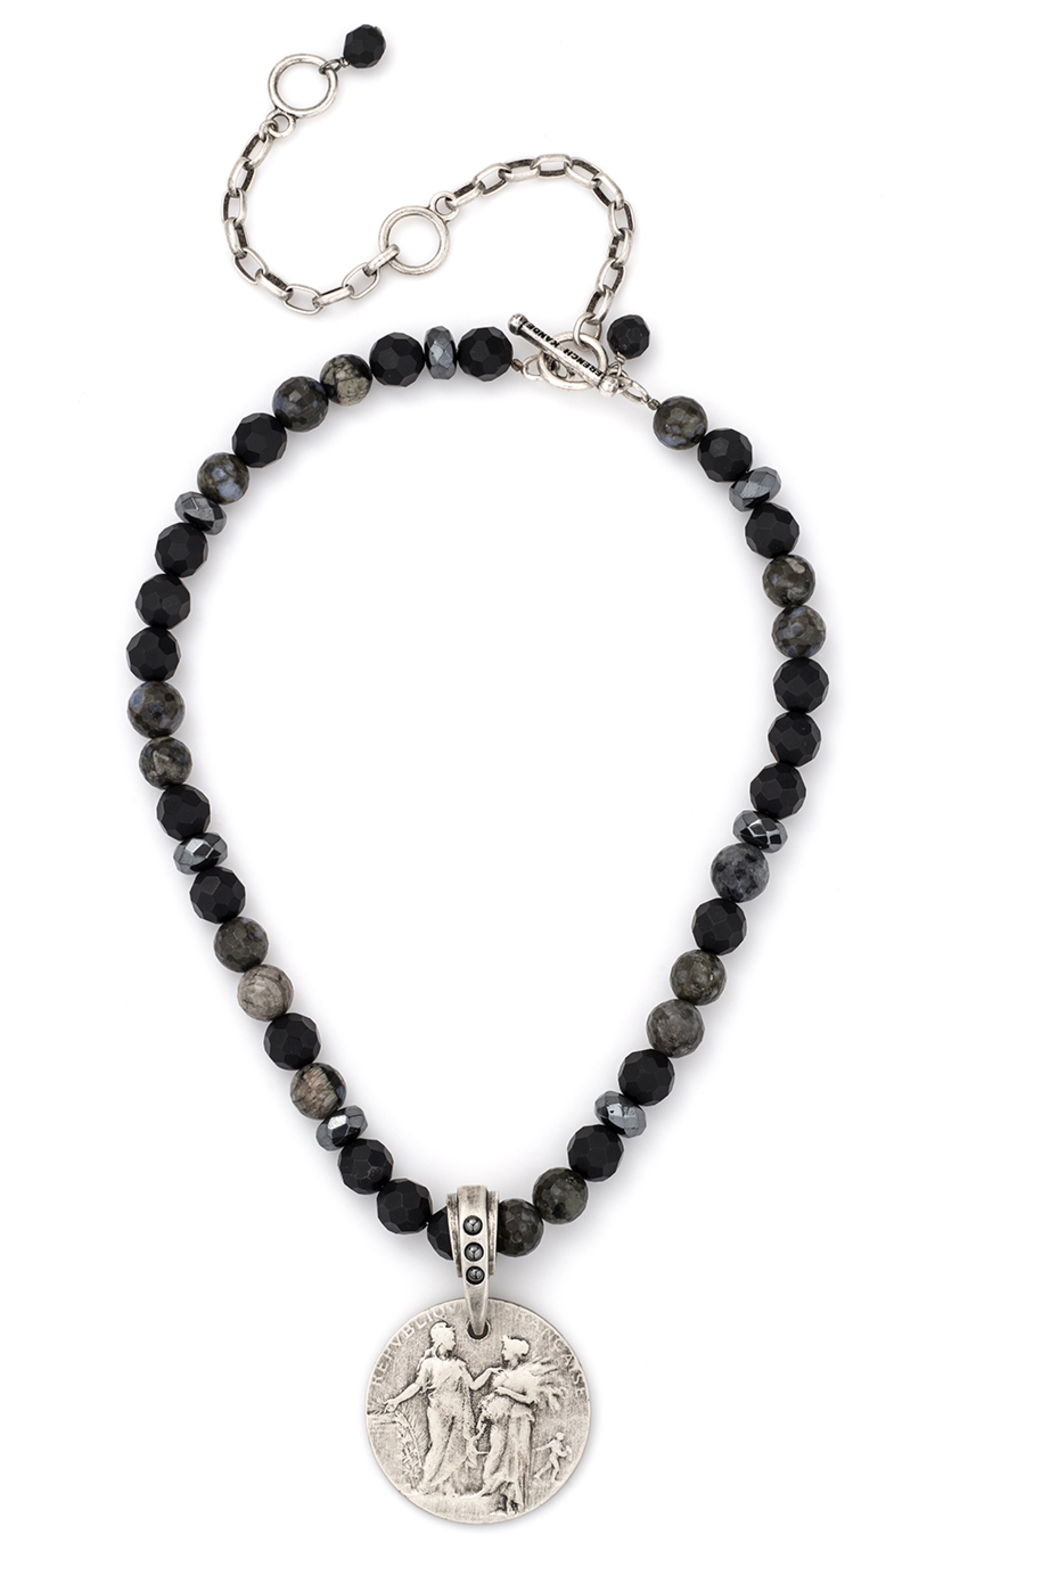 French Kande onyx and hematite necklace with Republique medallion - Main Image